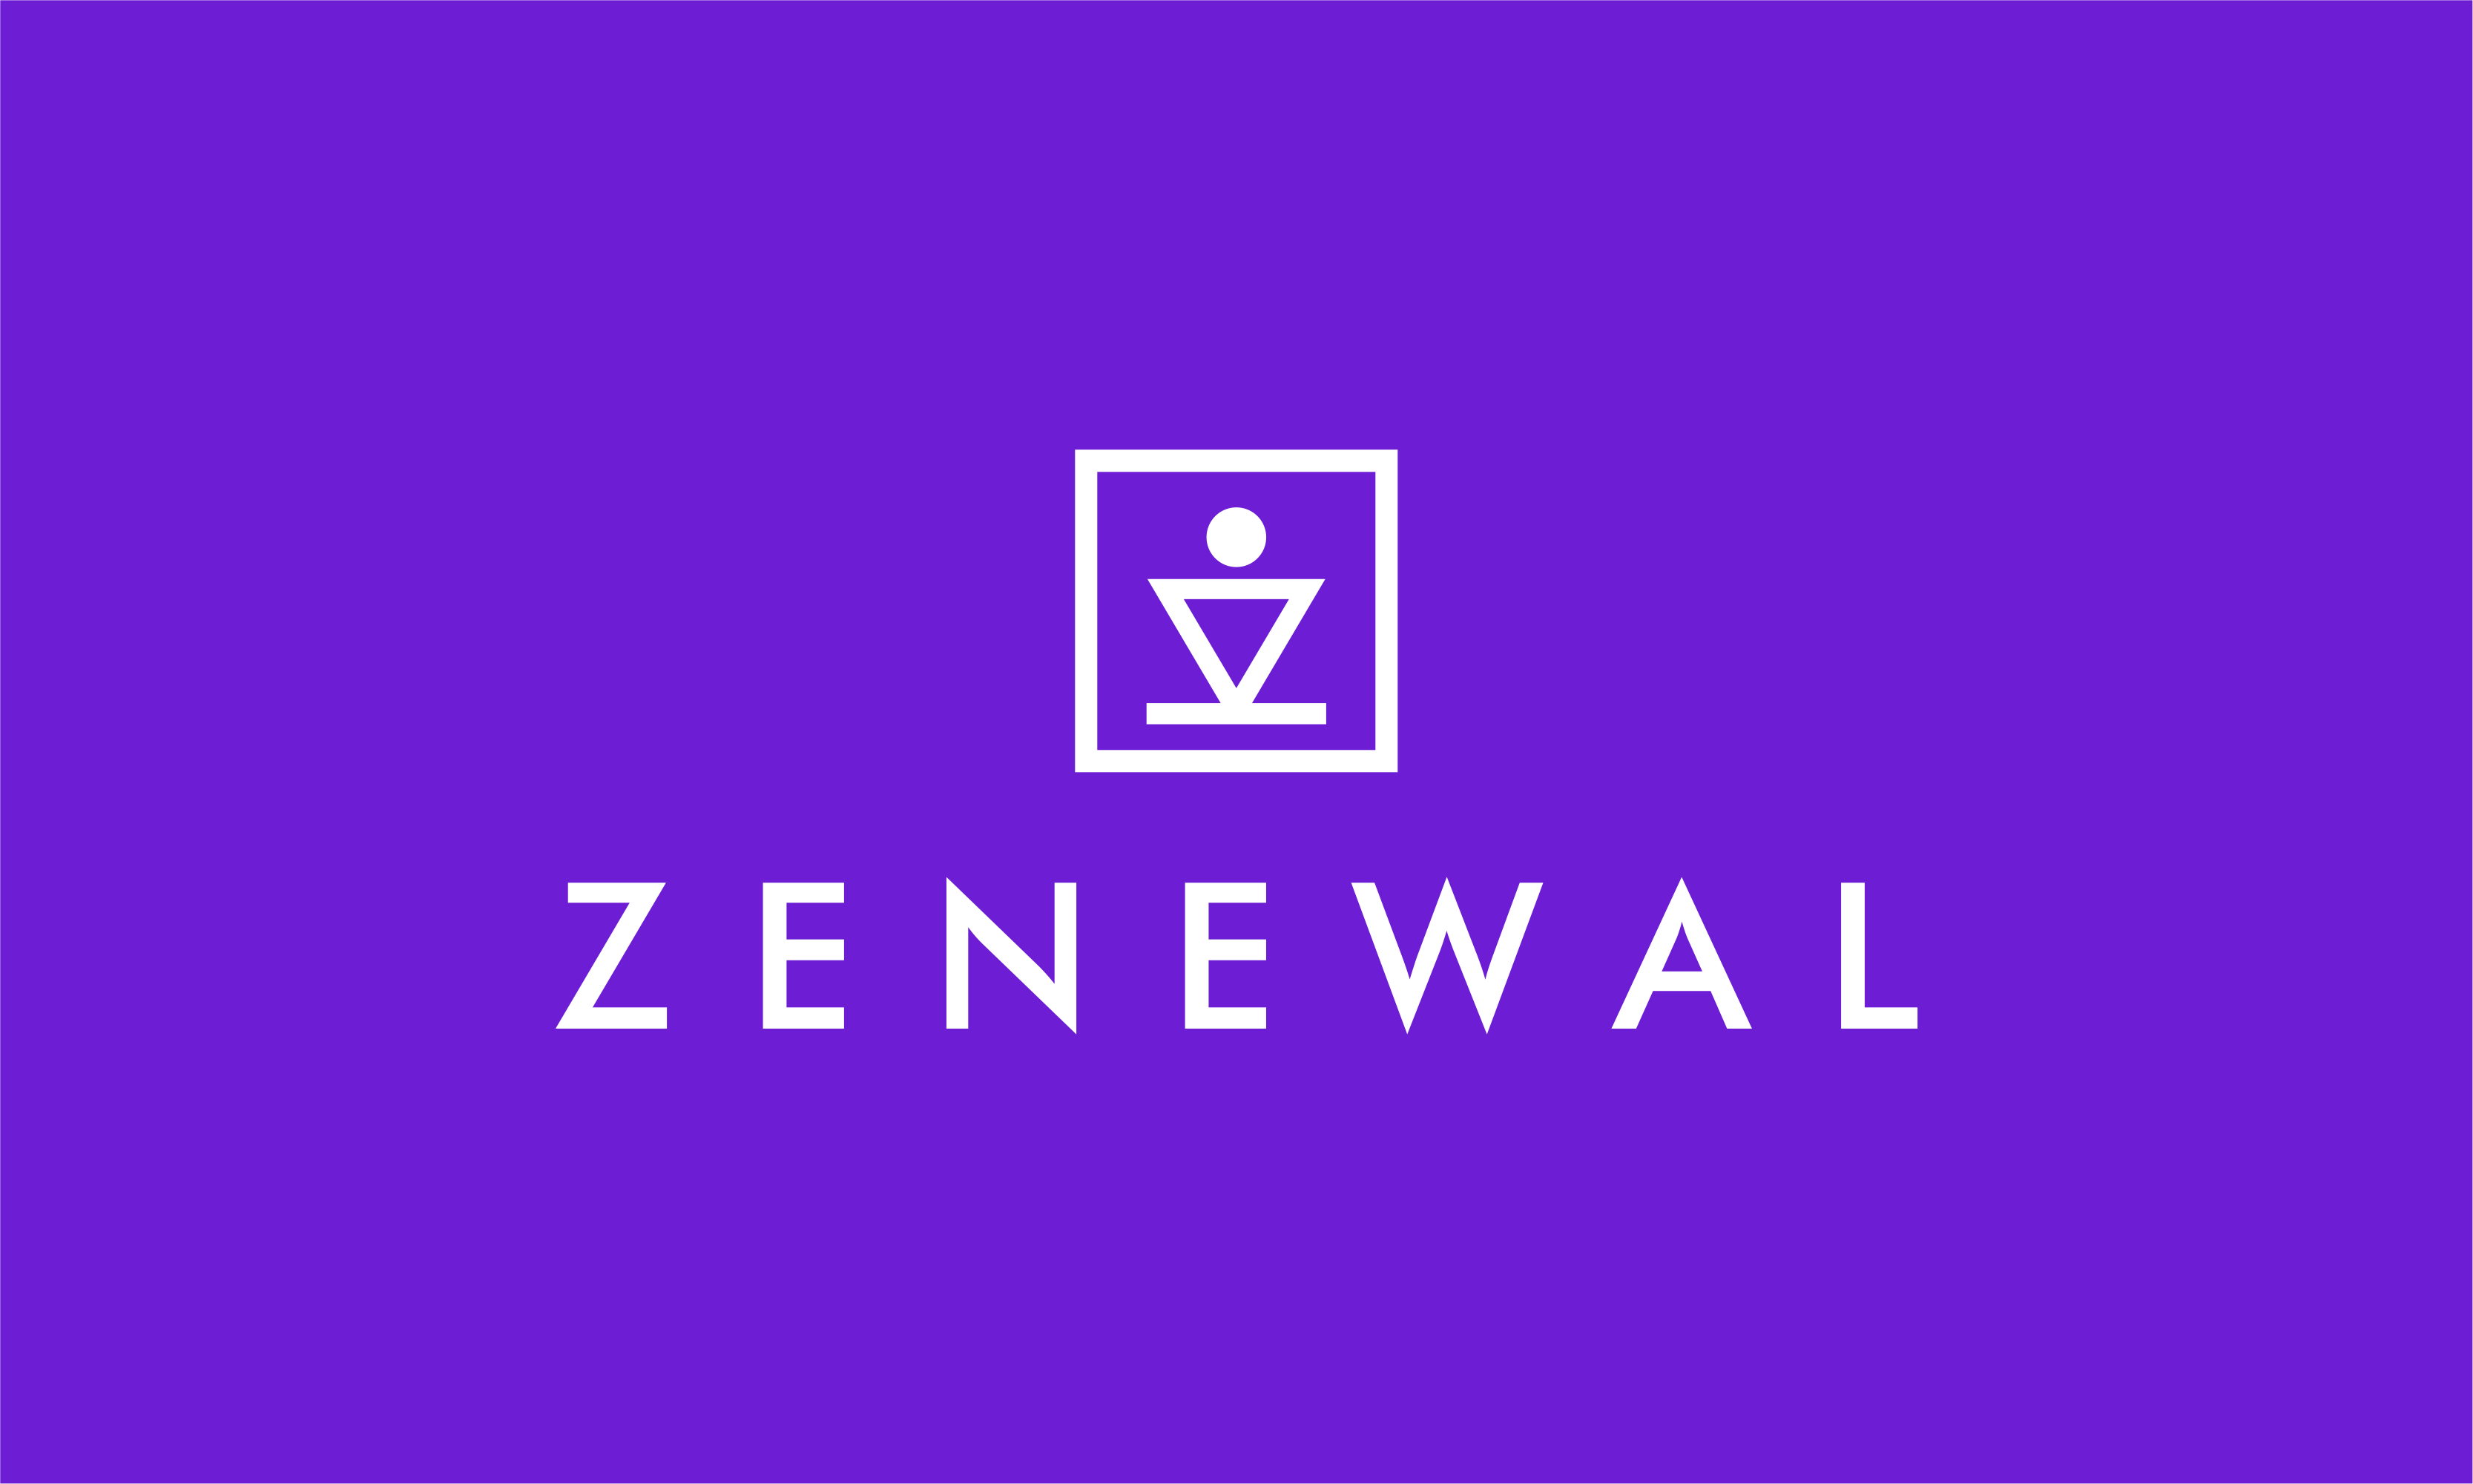 Zenewal - Calm business name for sale